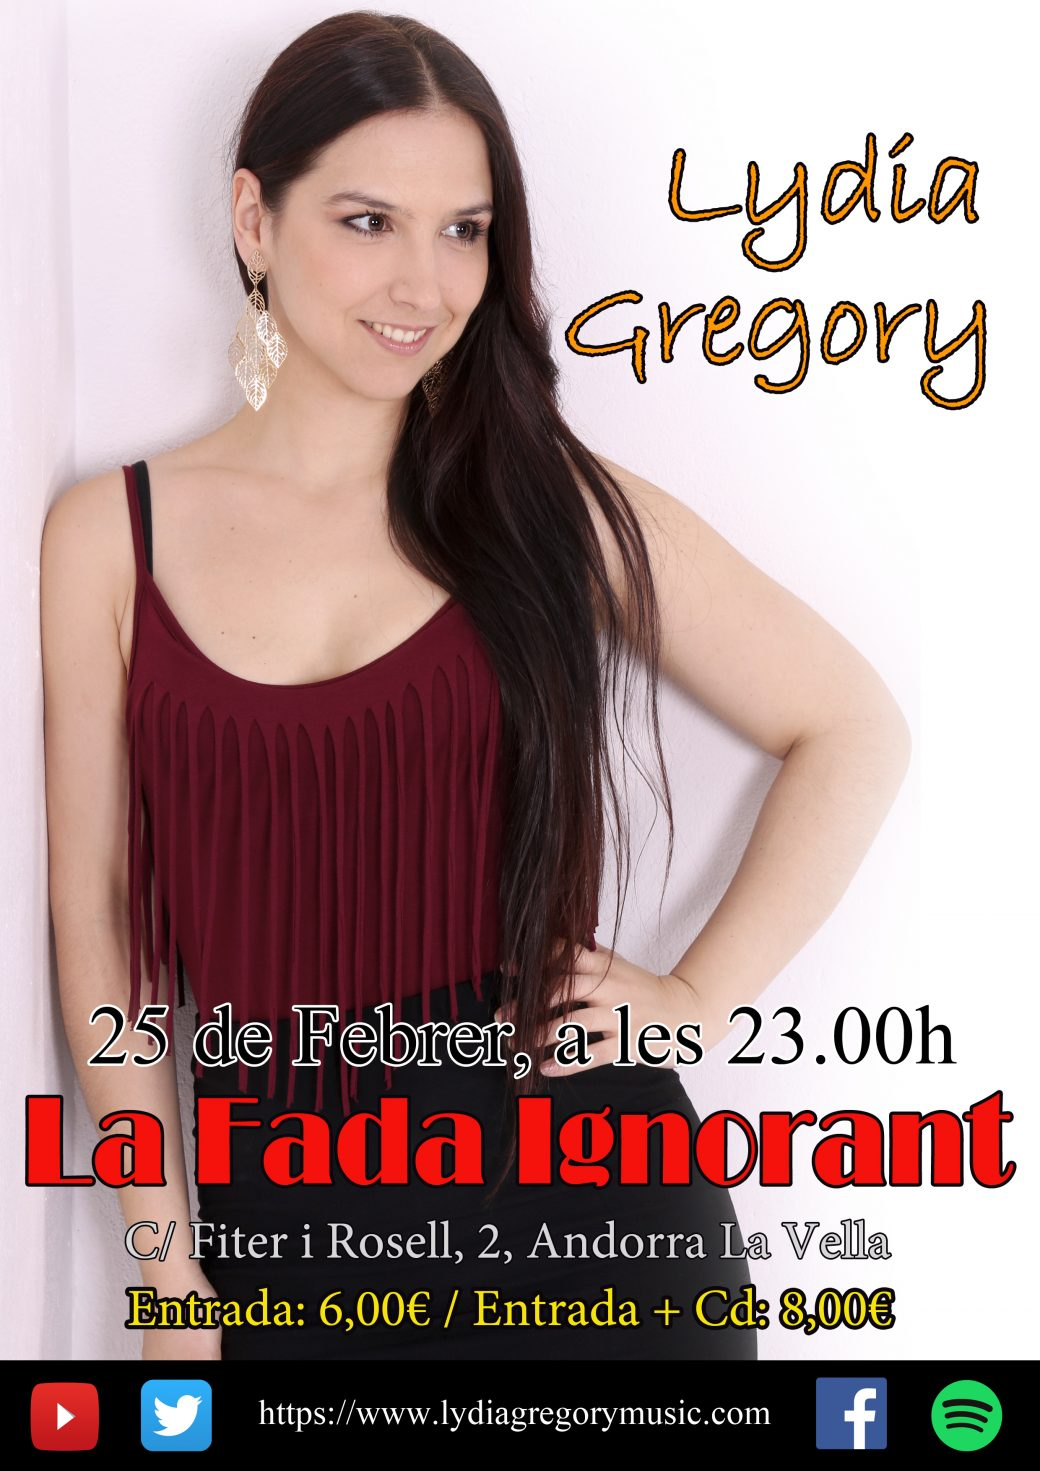 Cartel Lydia Gregory 04-2